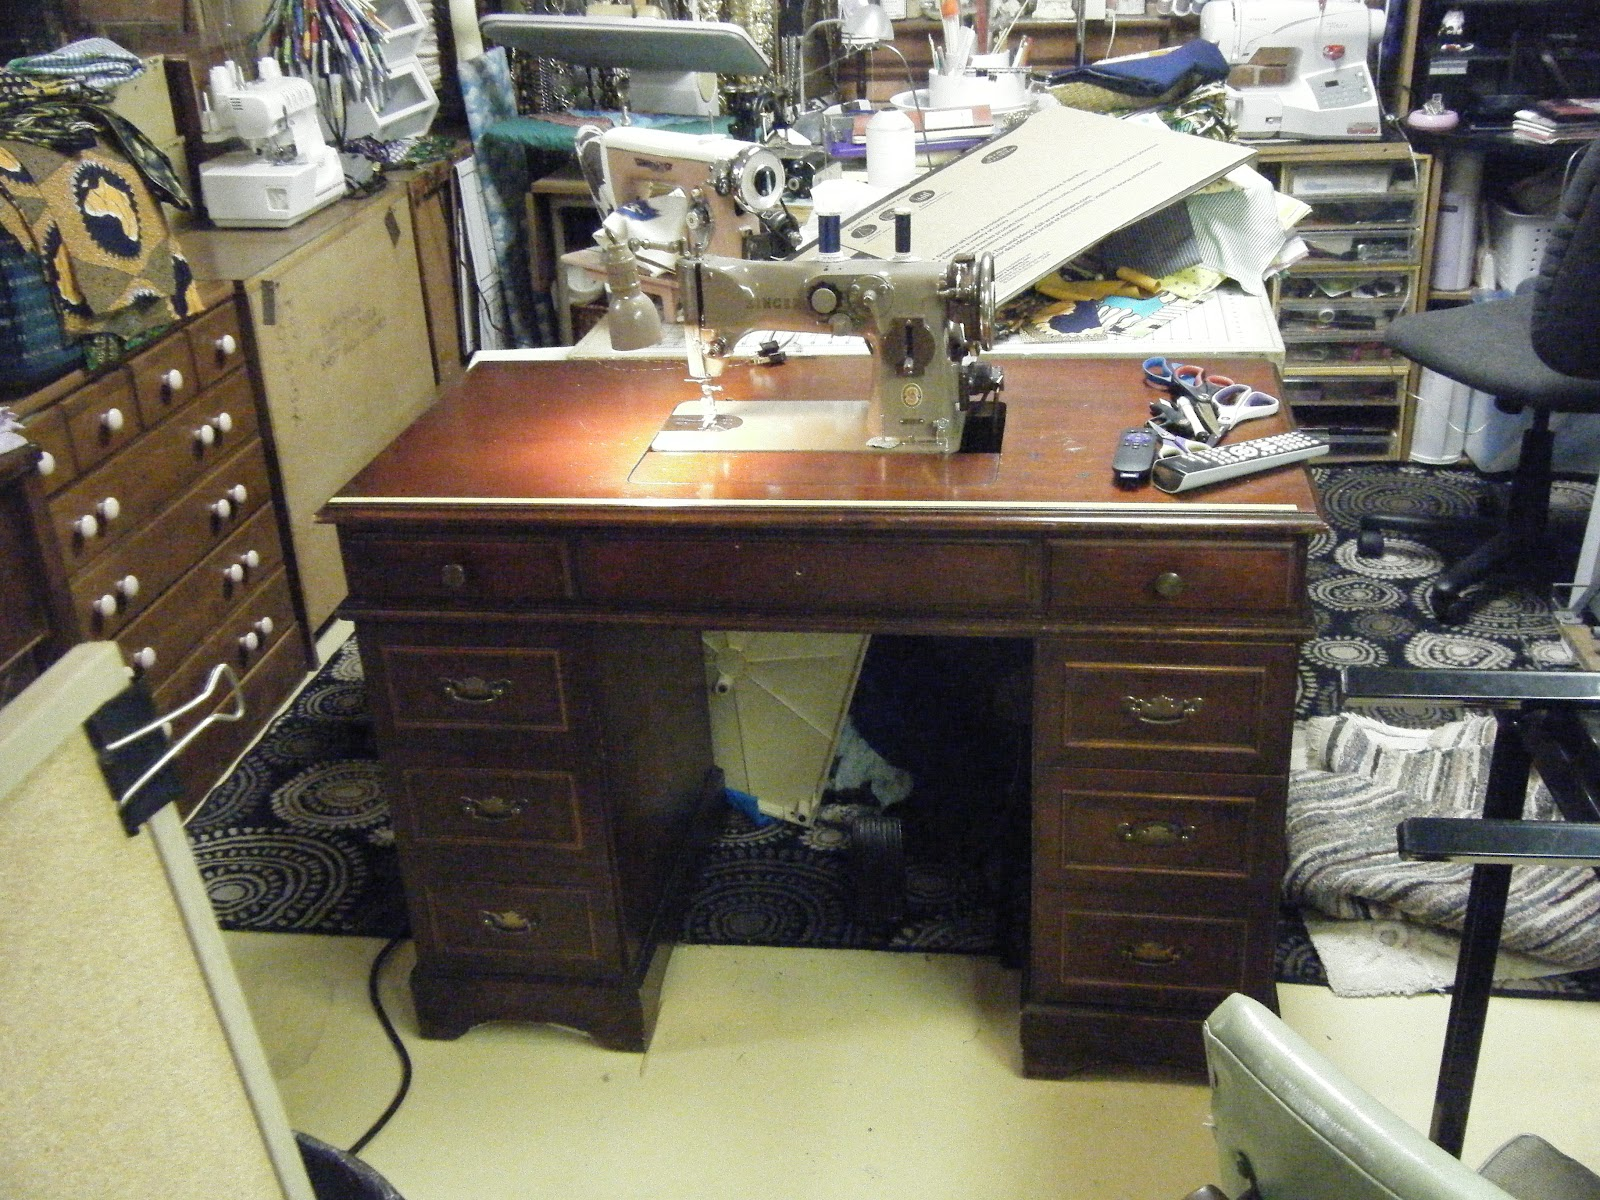 singer 316g sewing machine